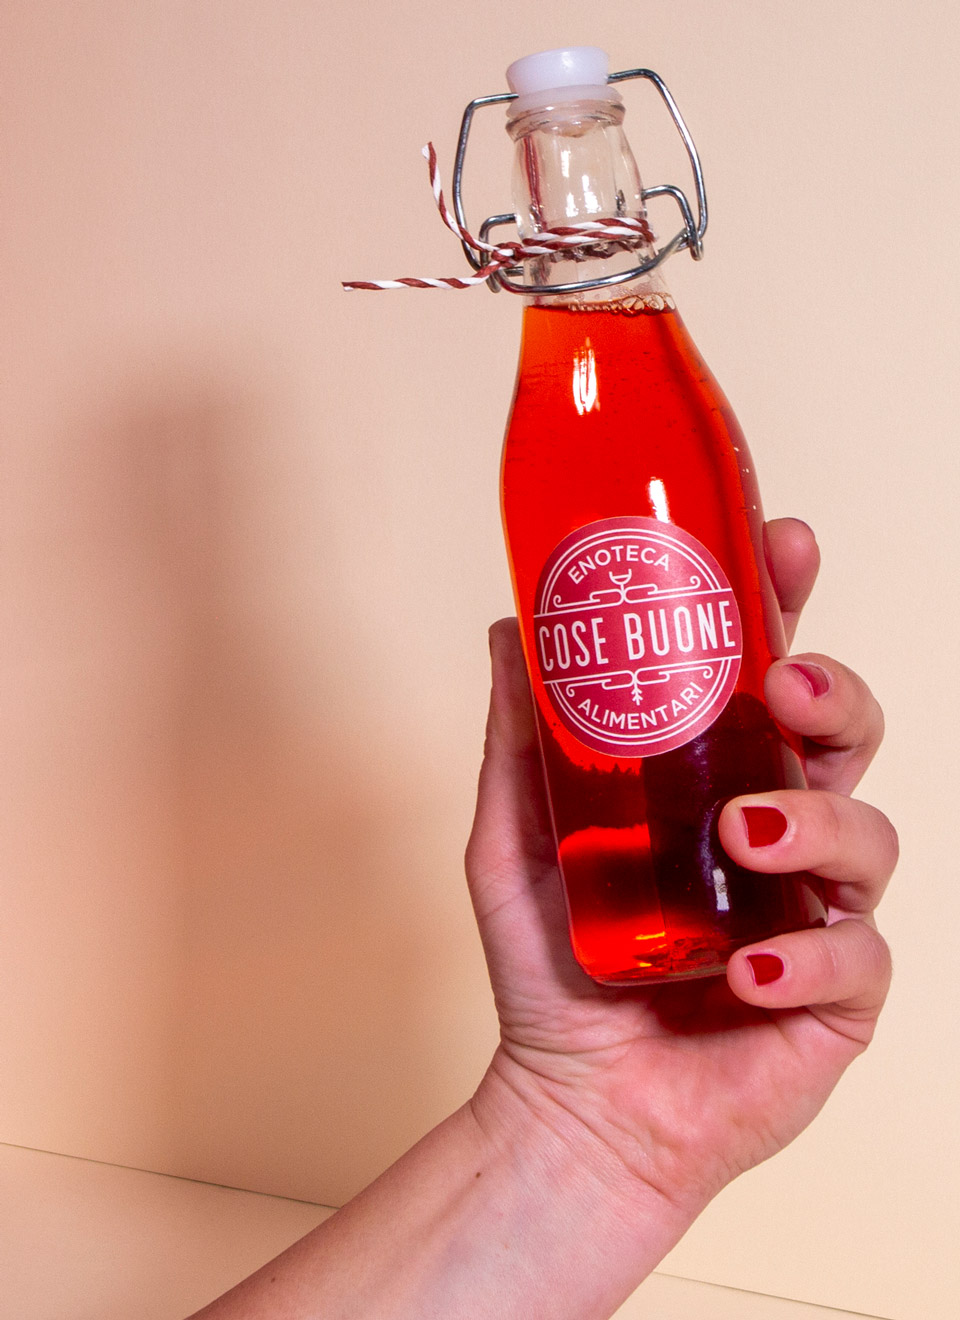 Cose Buone Spritz Packaging